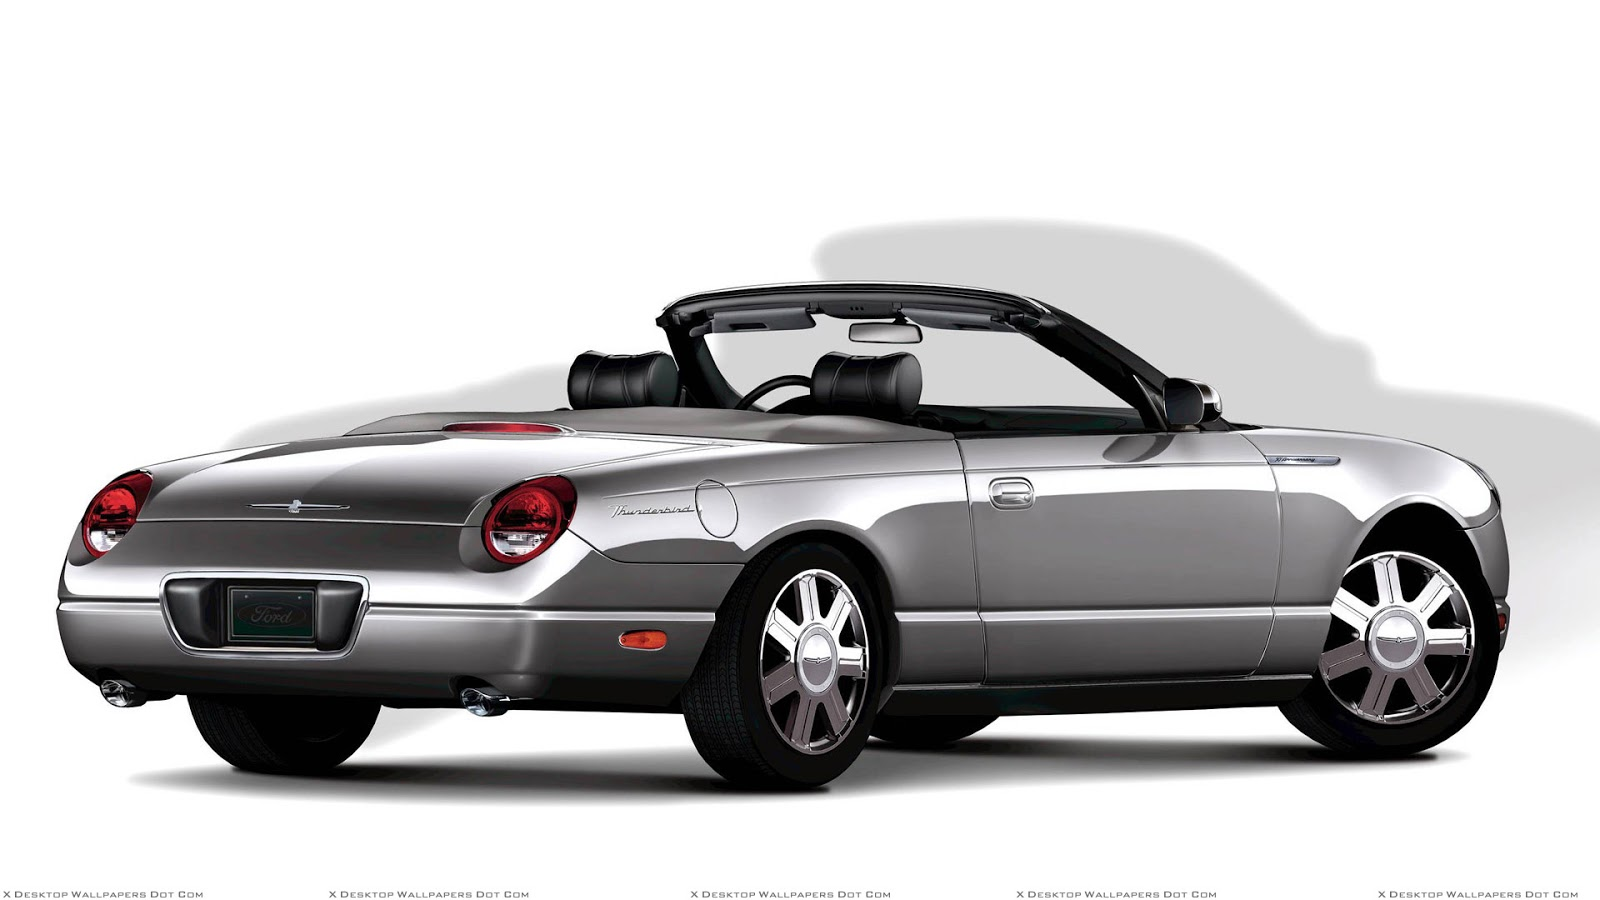 ford cars 2012 ford thunderbird. Cars Review. Best American Auto & Cars Review